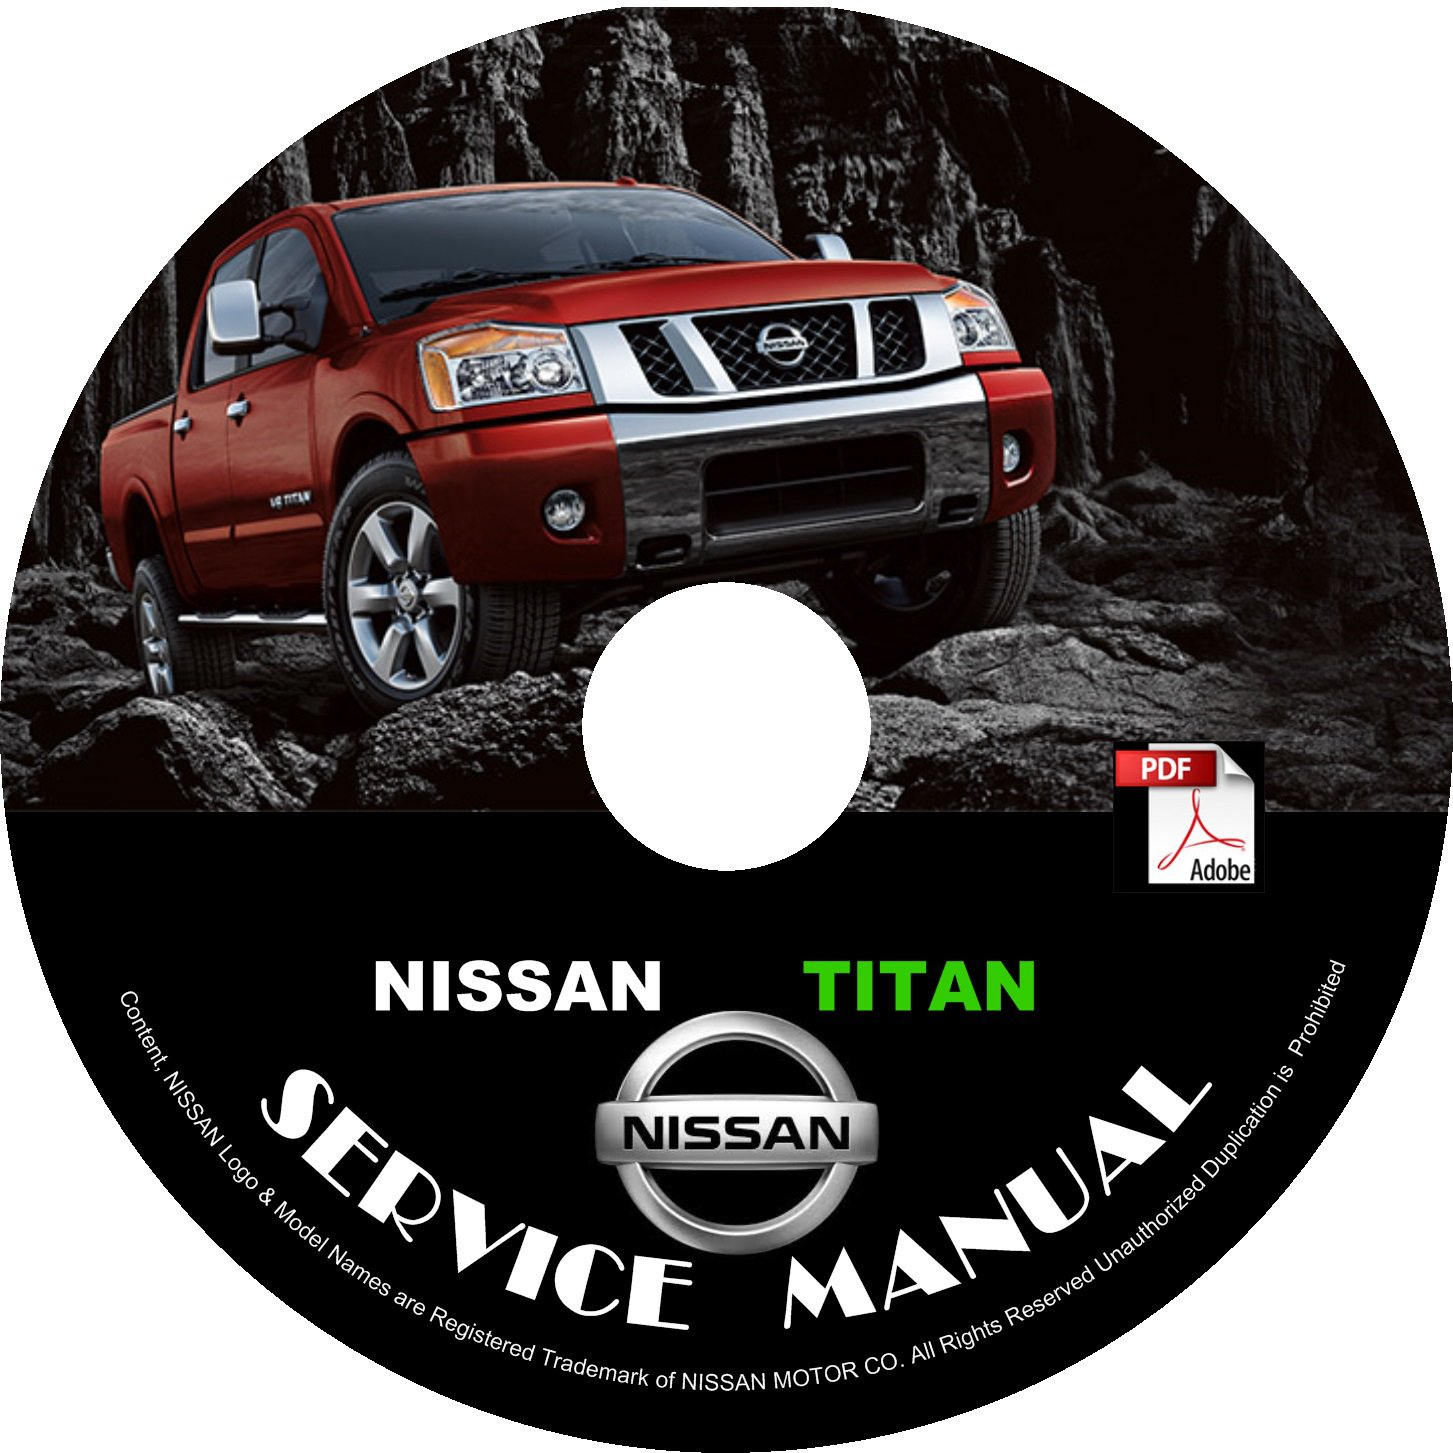 2010 Nissan Titan Factory Repair Service Shop Manual on CD